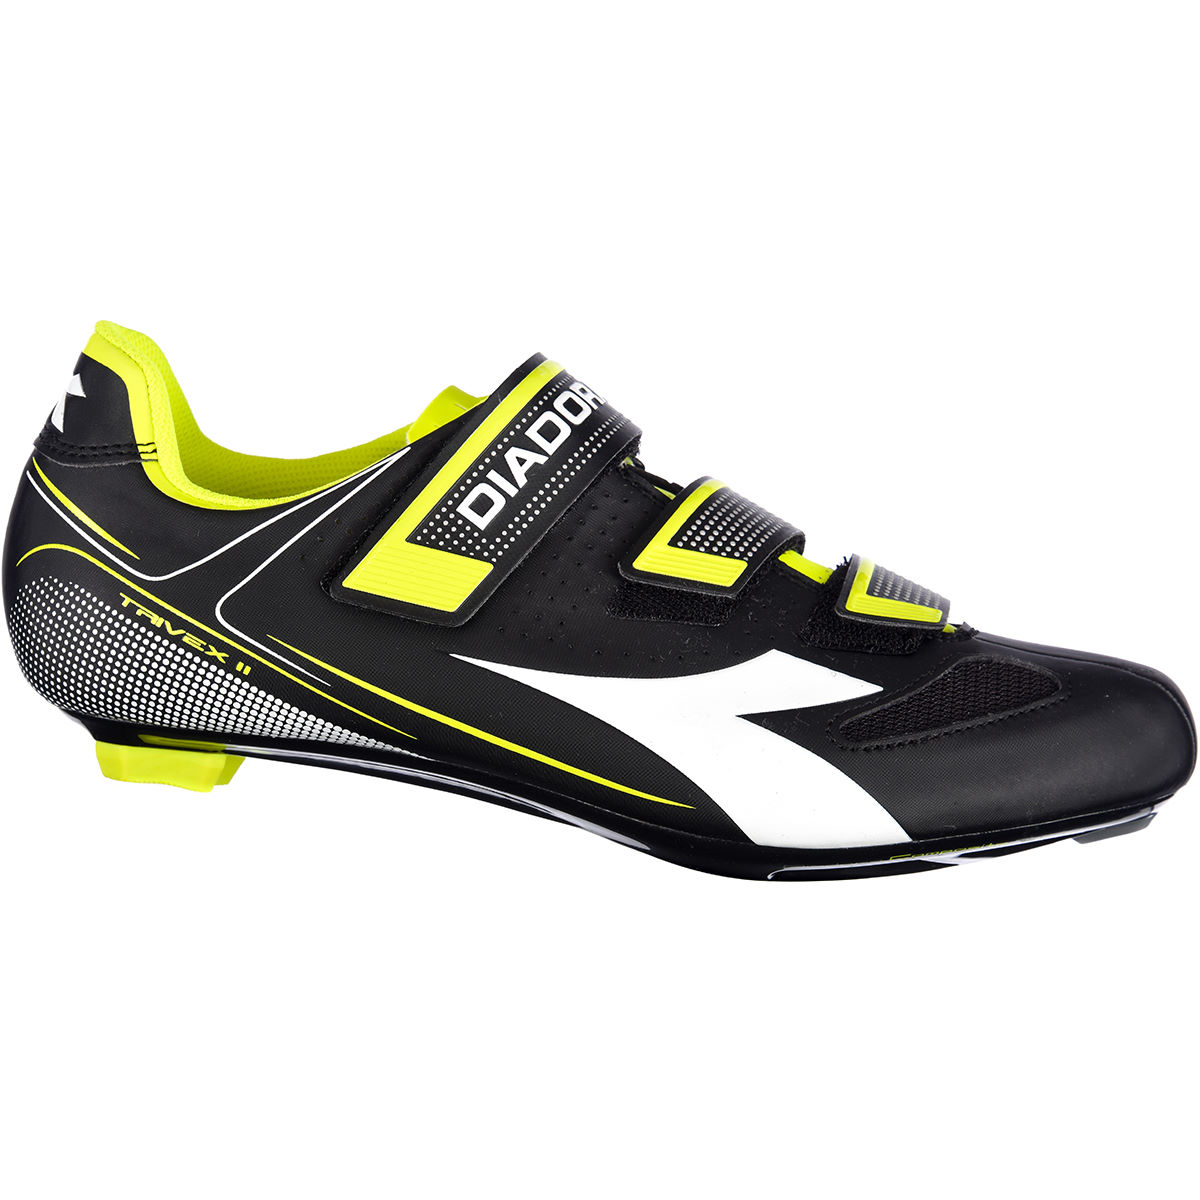 Diadora Trivex II SPD-SL Road Shoes - Zapatillas para bicicletas de carretera